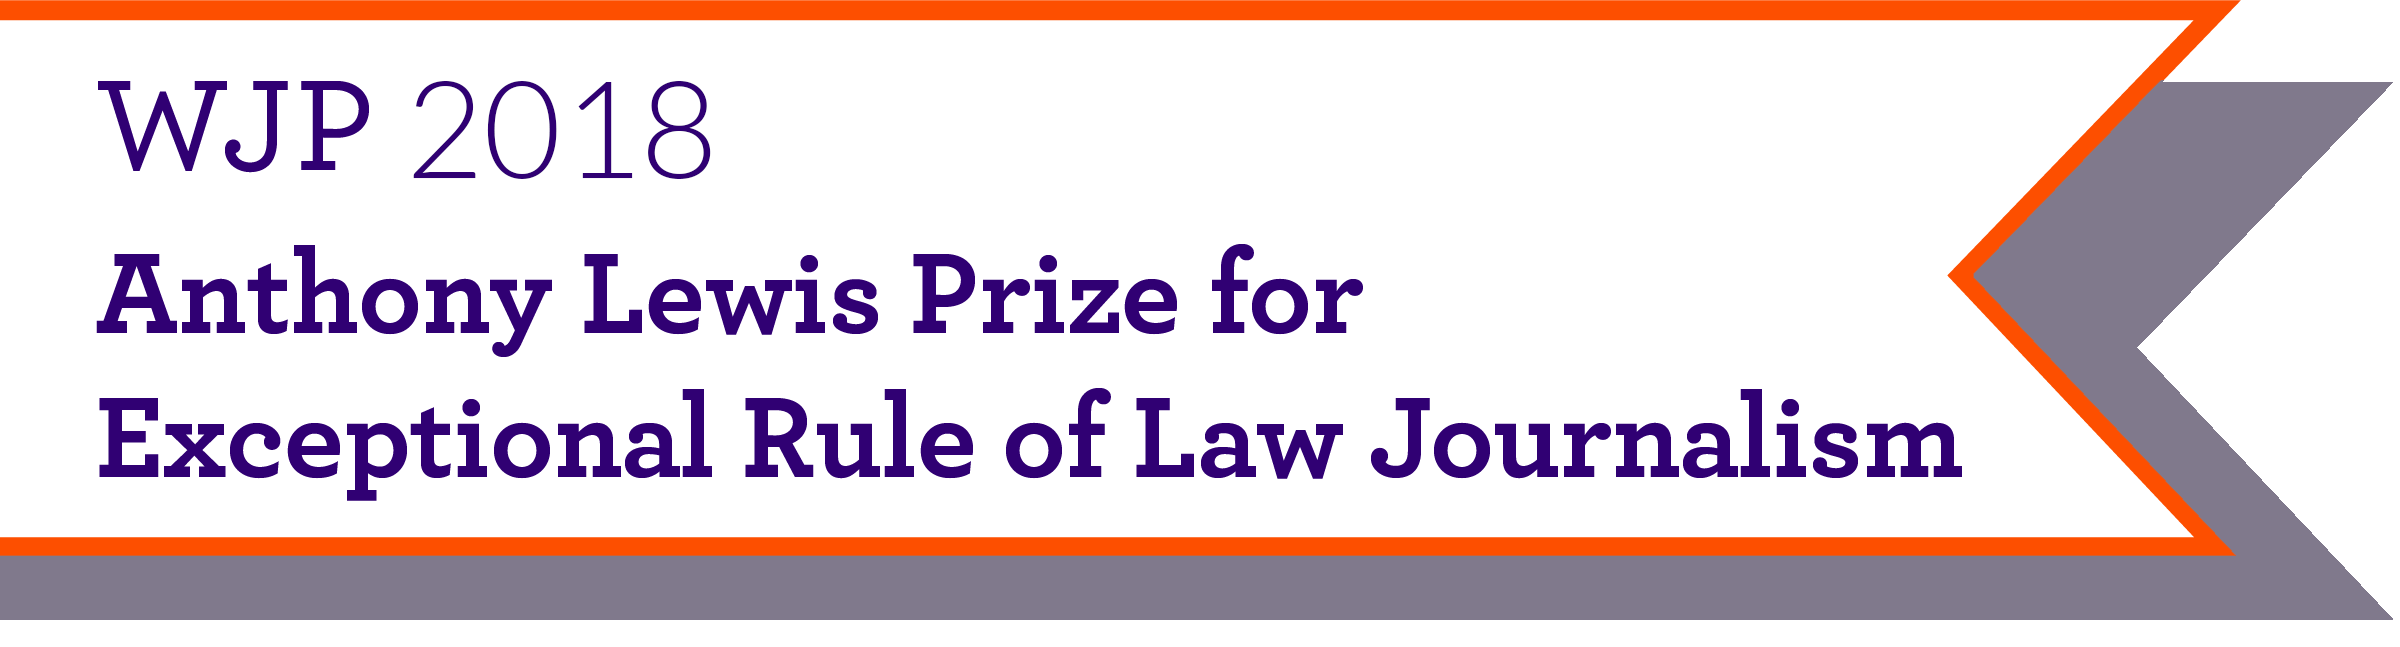 Anthony Lewis Prize for Exceptional Rule of Law Journalism